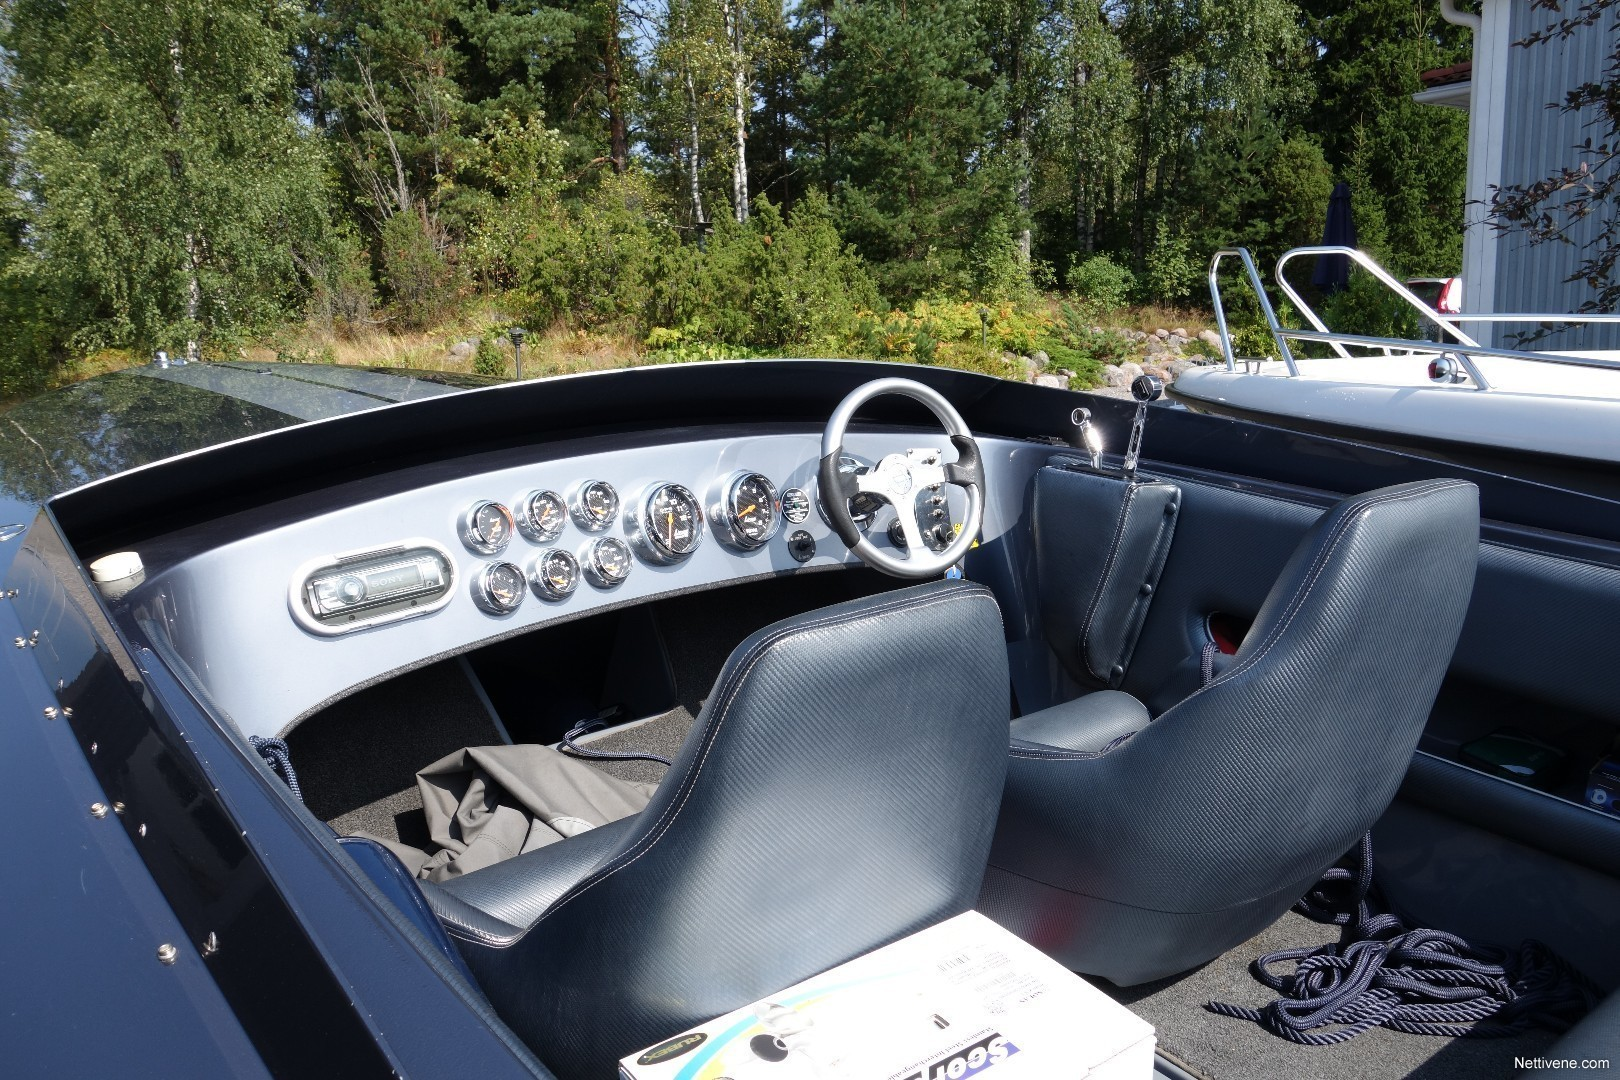 Donzi 22 Classic Don Aronow Edition motor boat 2006 - Inkoo